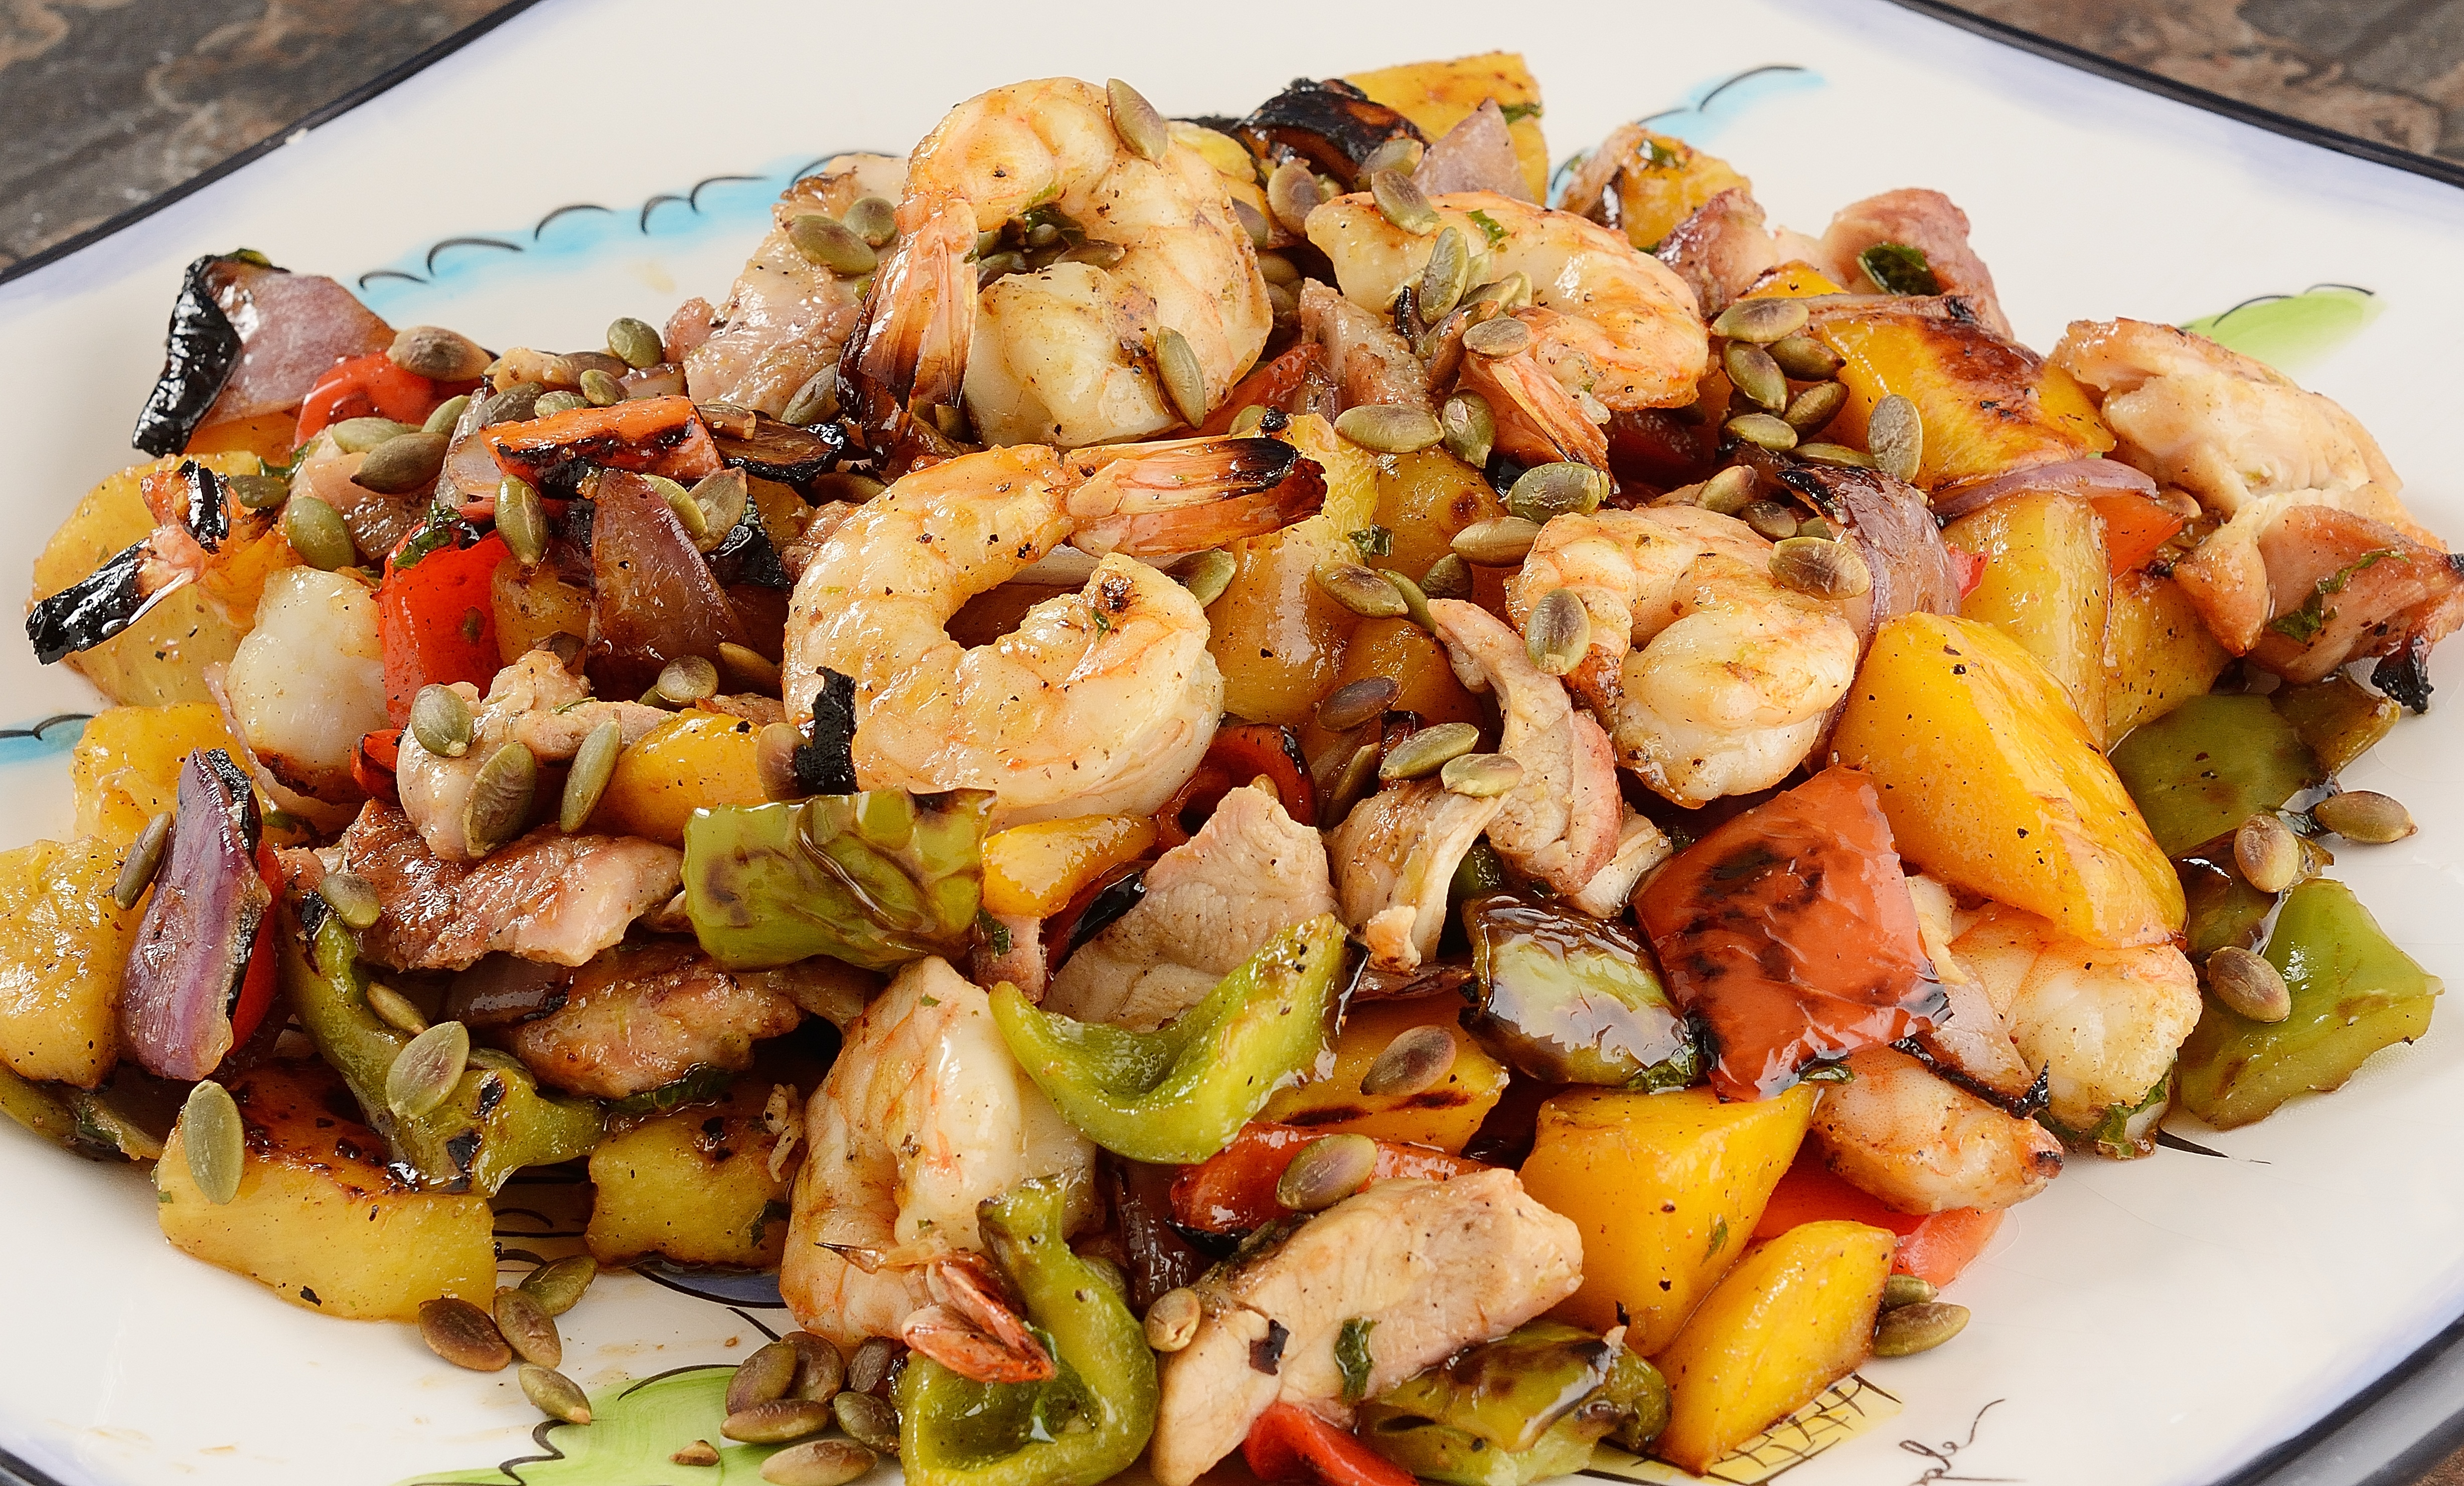 Salad with pineapple and chicken breast, shrimps, crab sticks 19